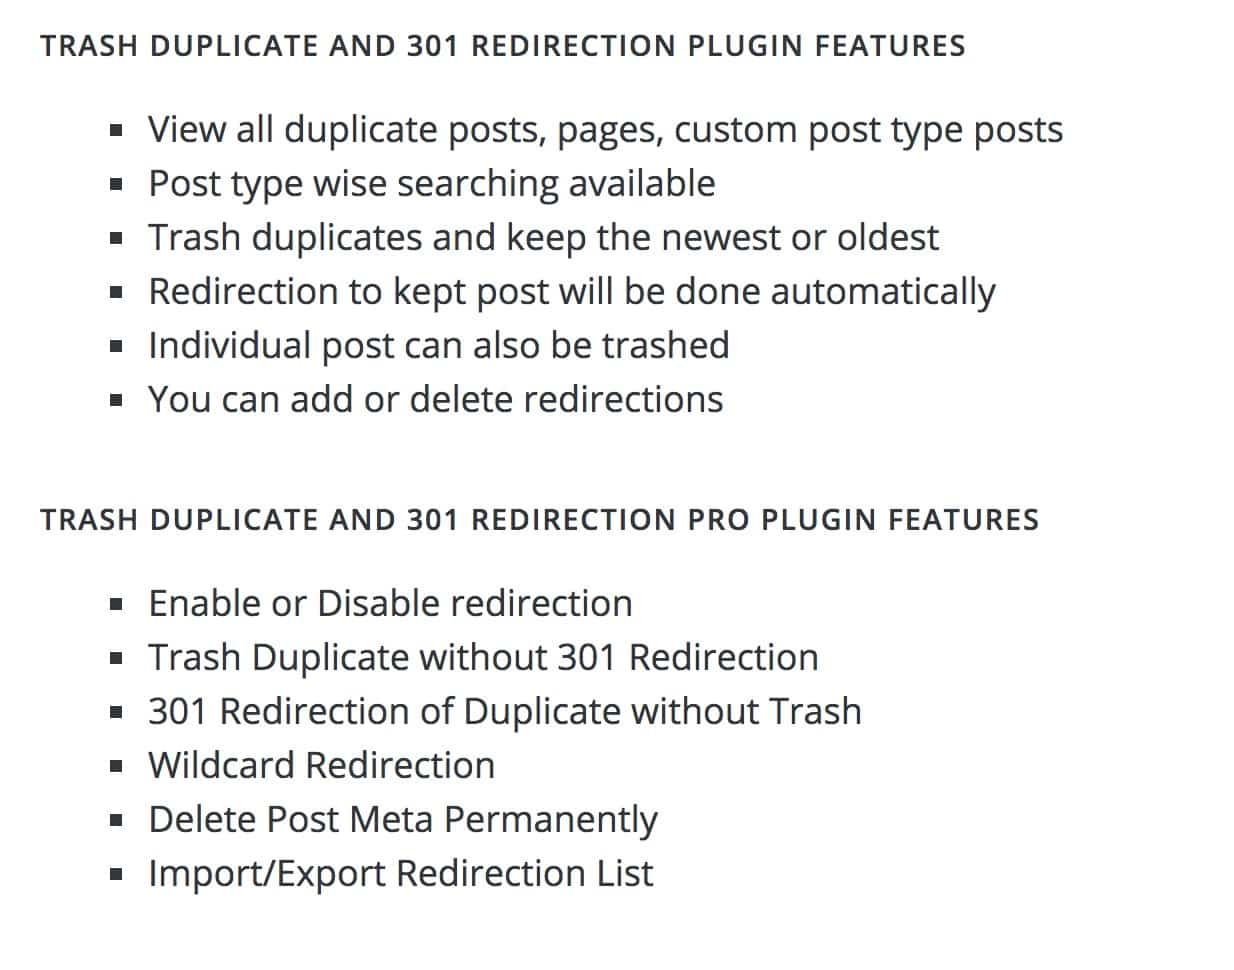 Trash Duplicate and 301 Redirect features